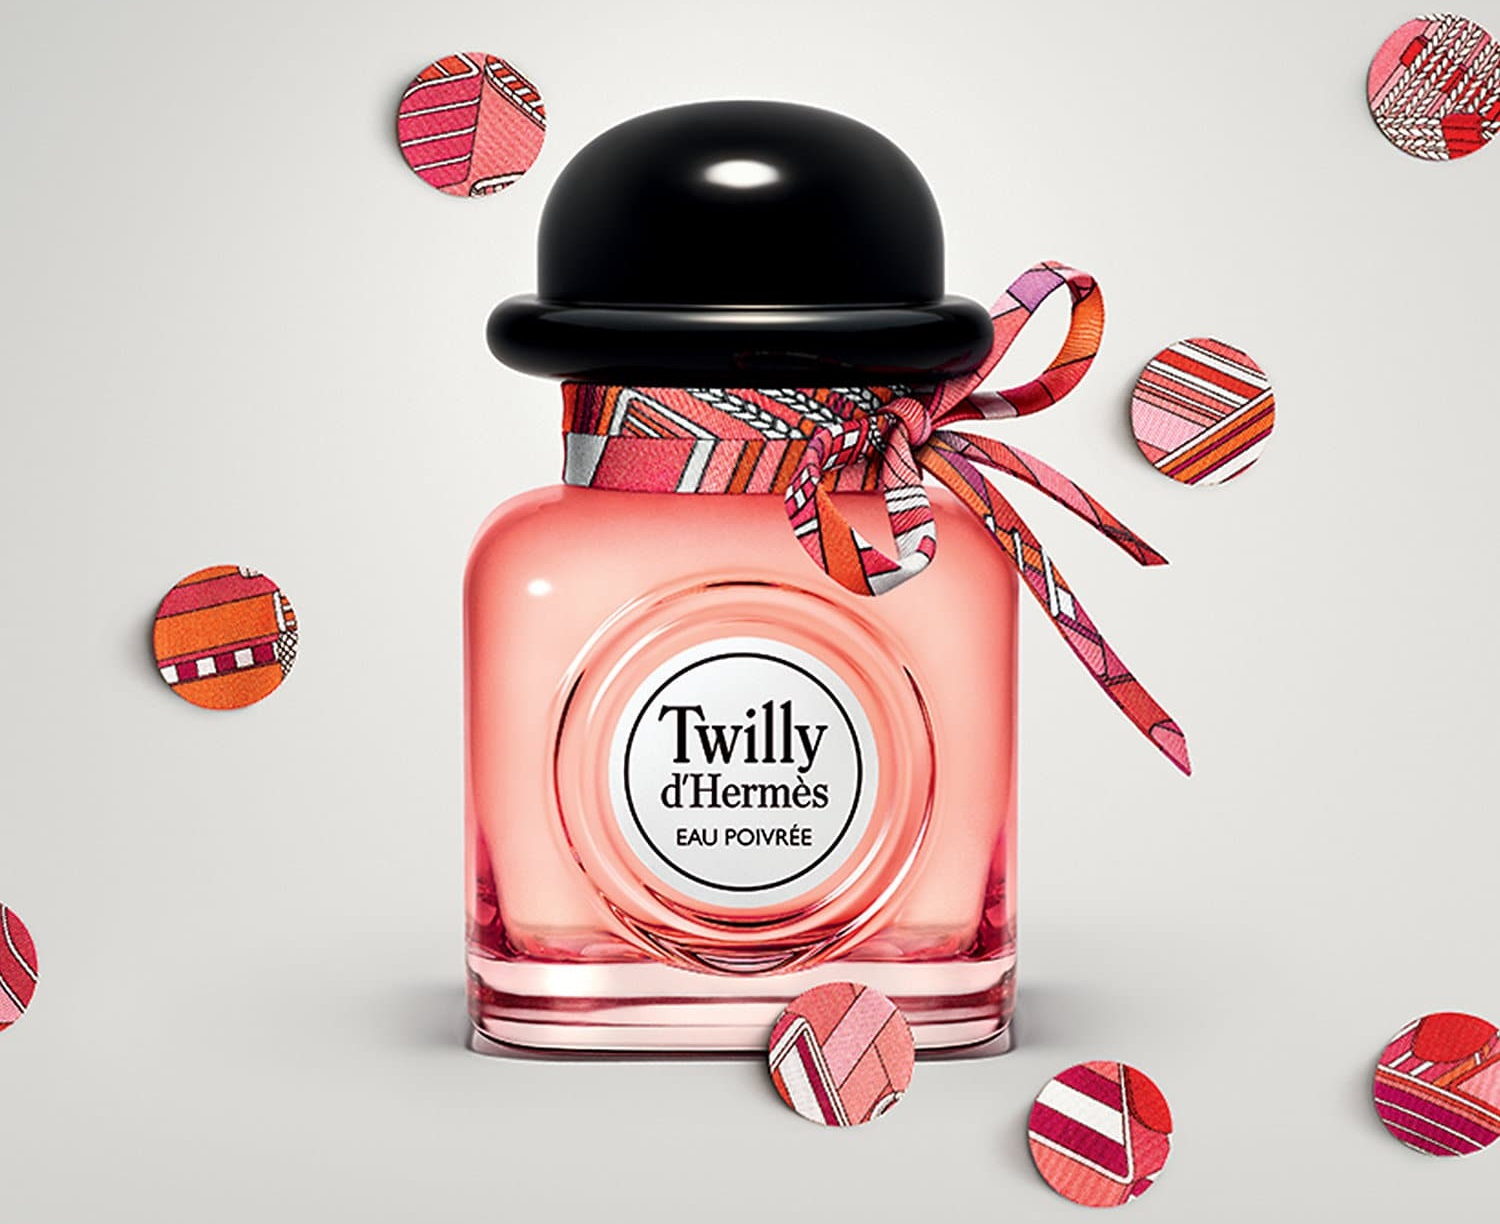 Twilly d'Hermes Eau Poivree opinie